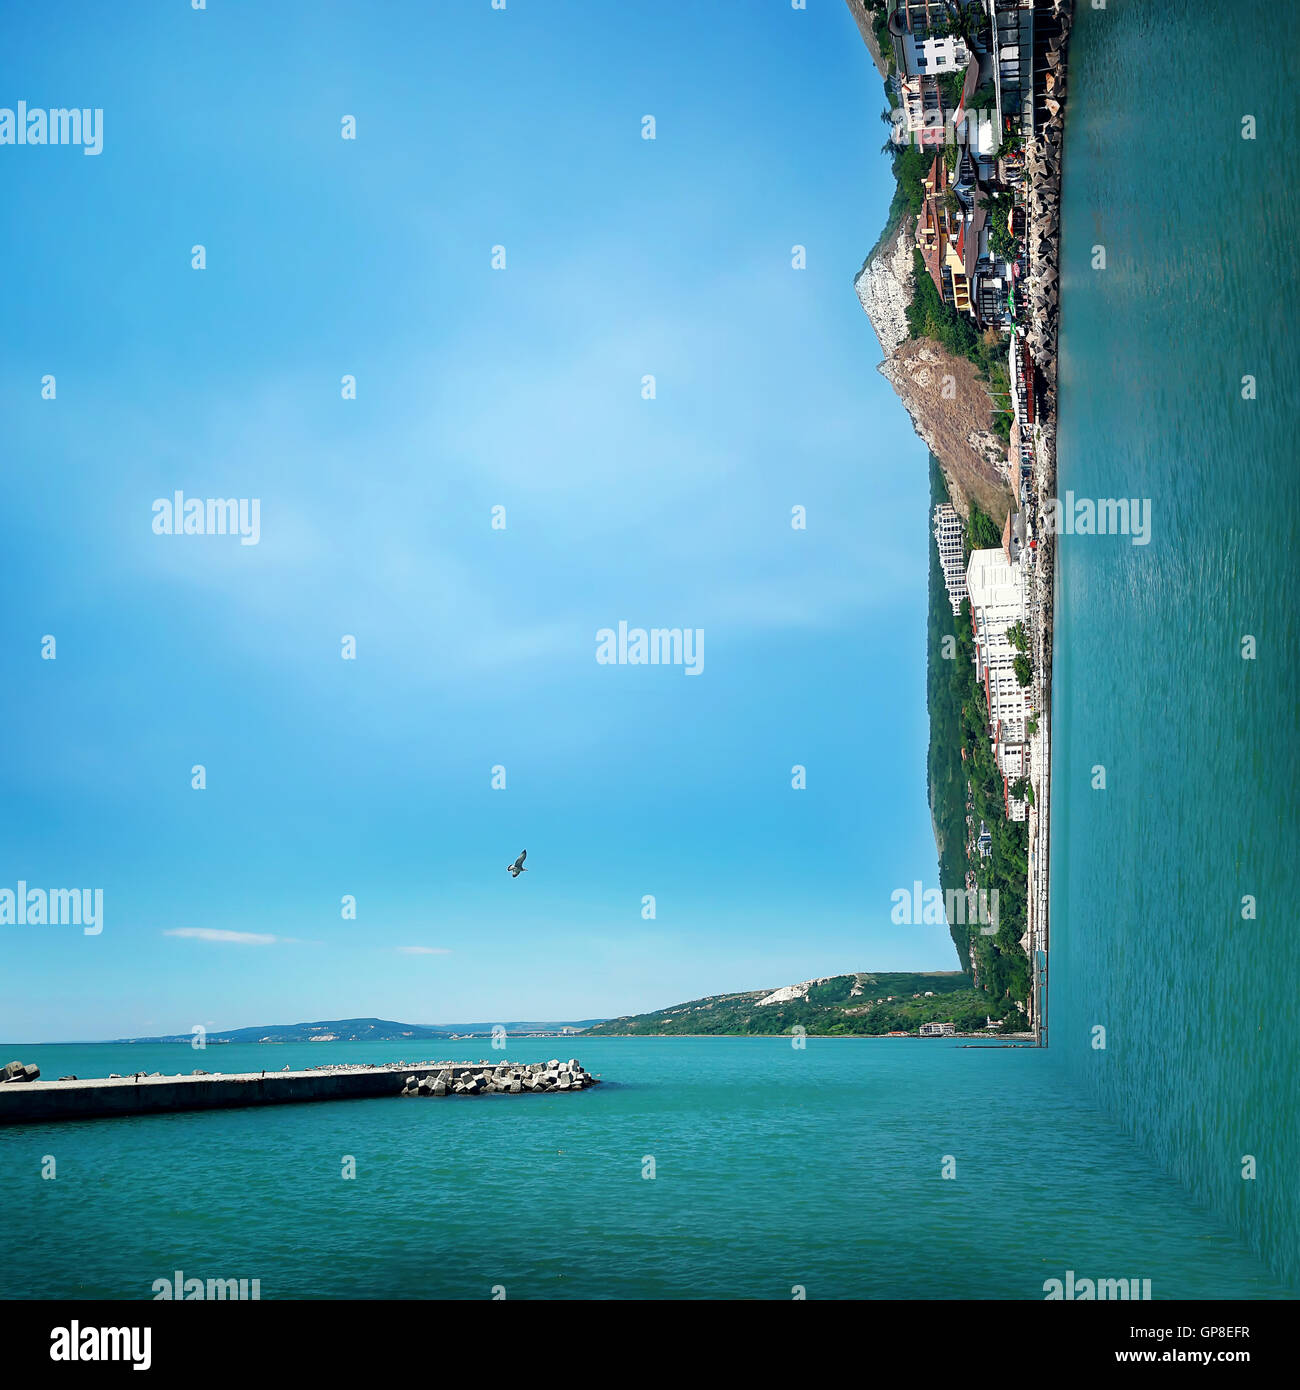 Surreal background of two worlds collide at the coast of the sea. Sea landscape journey and vacation concept. Stock Photo